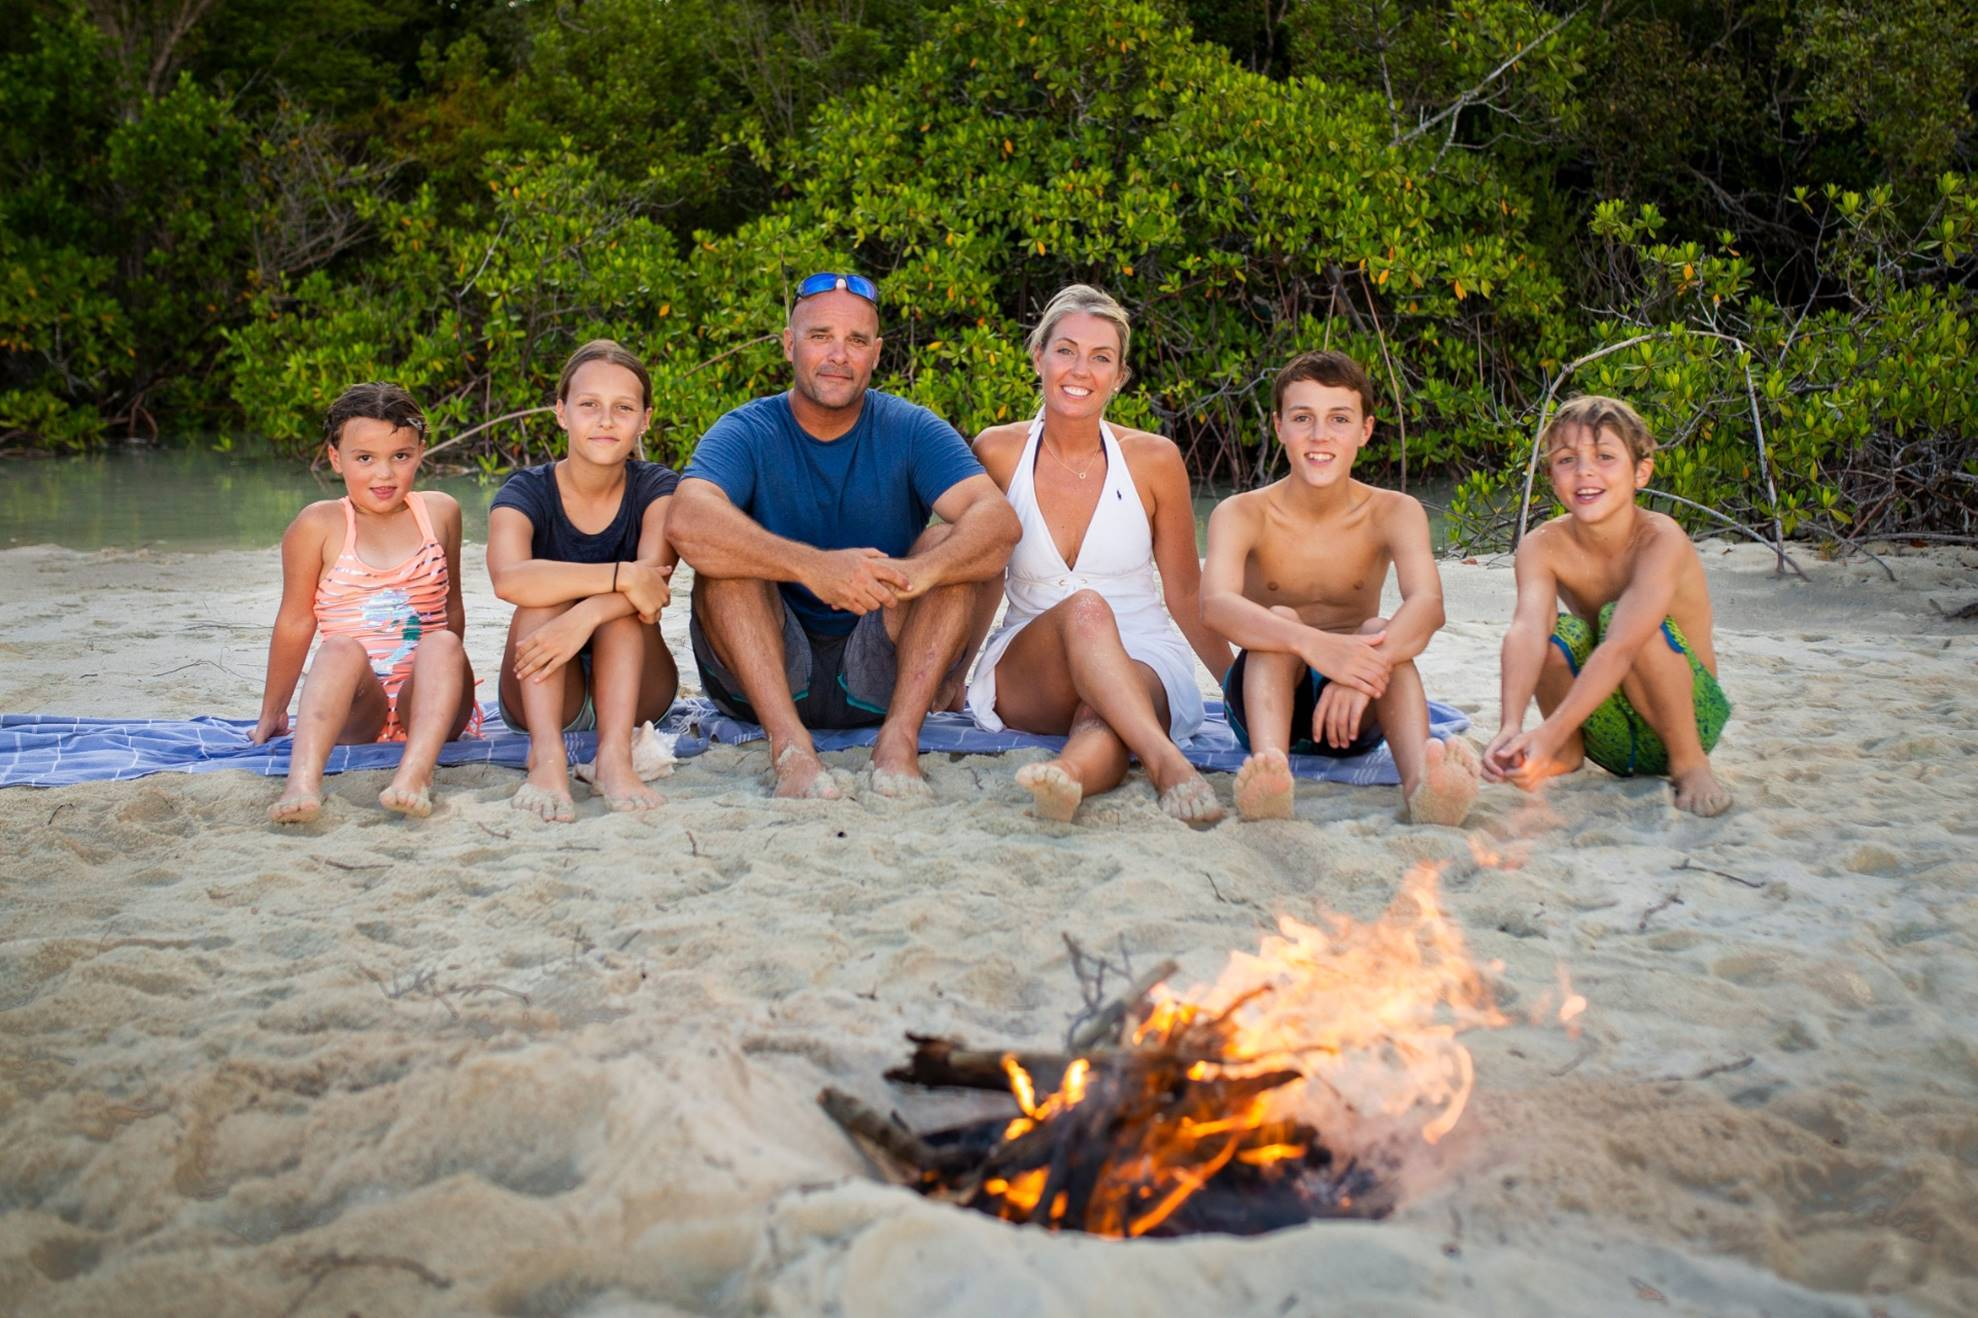 Renovation Island stars Sarah and Bryan Baeumler and their children sitting on the sand in front of a fire